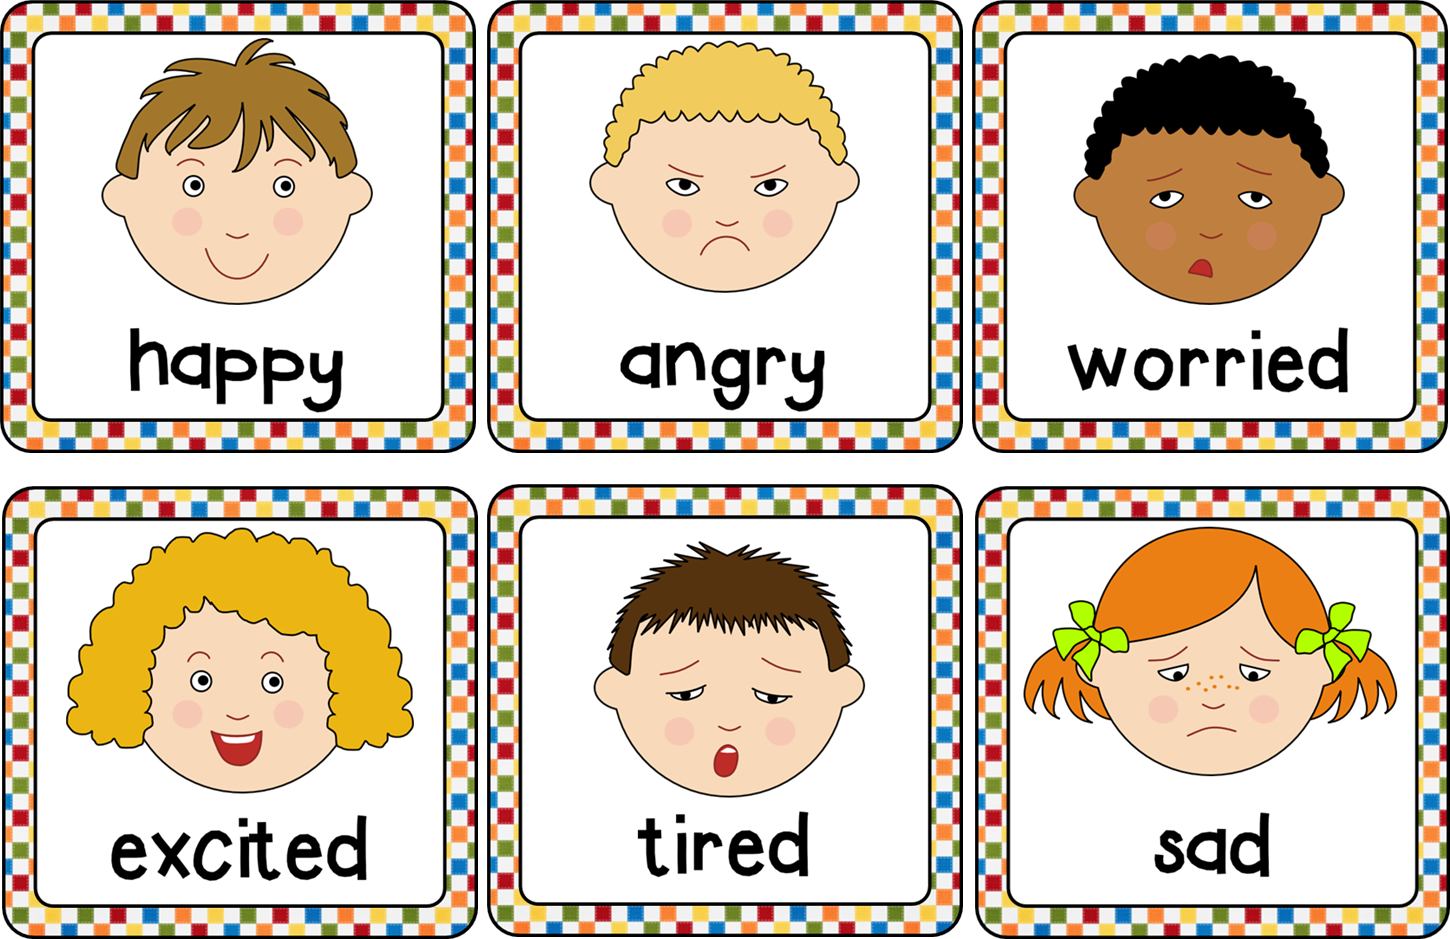 Mad clipart preschool. Emotions cards helps to